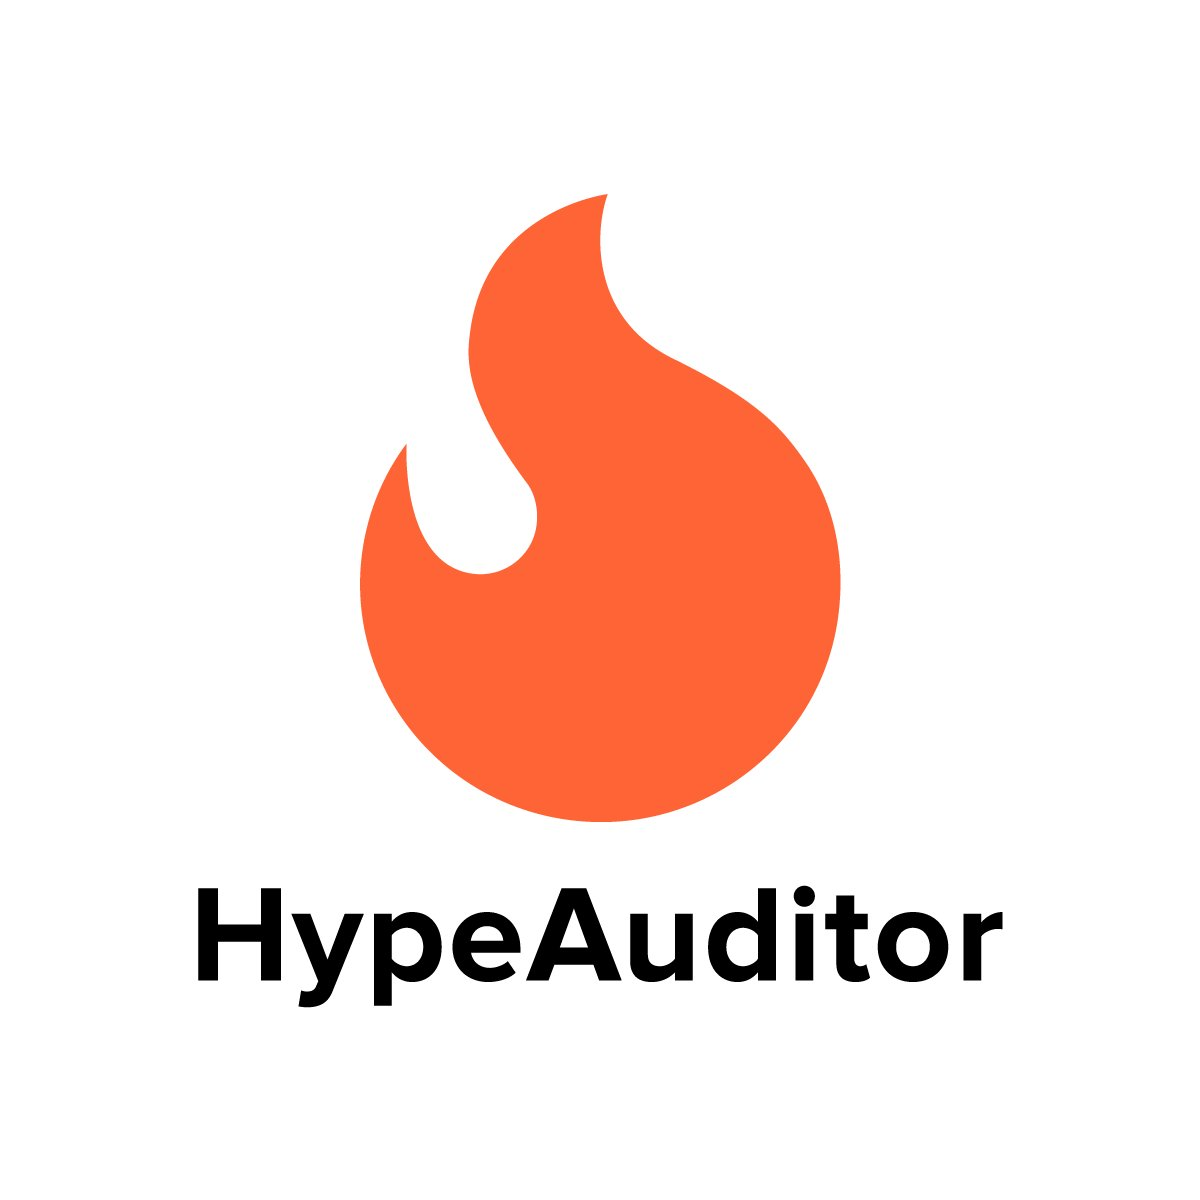 HypeAuditor (@hypeauditor) | Twitter